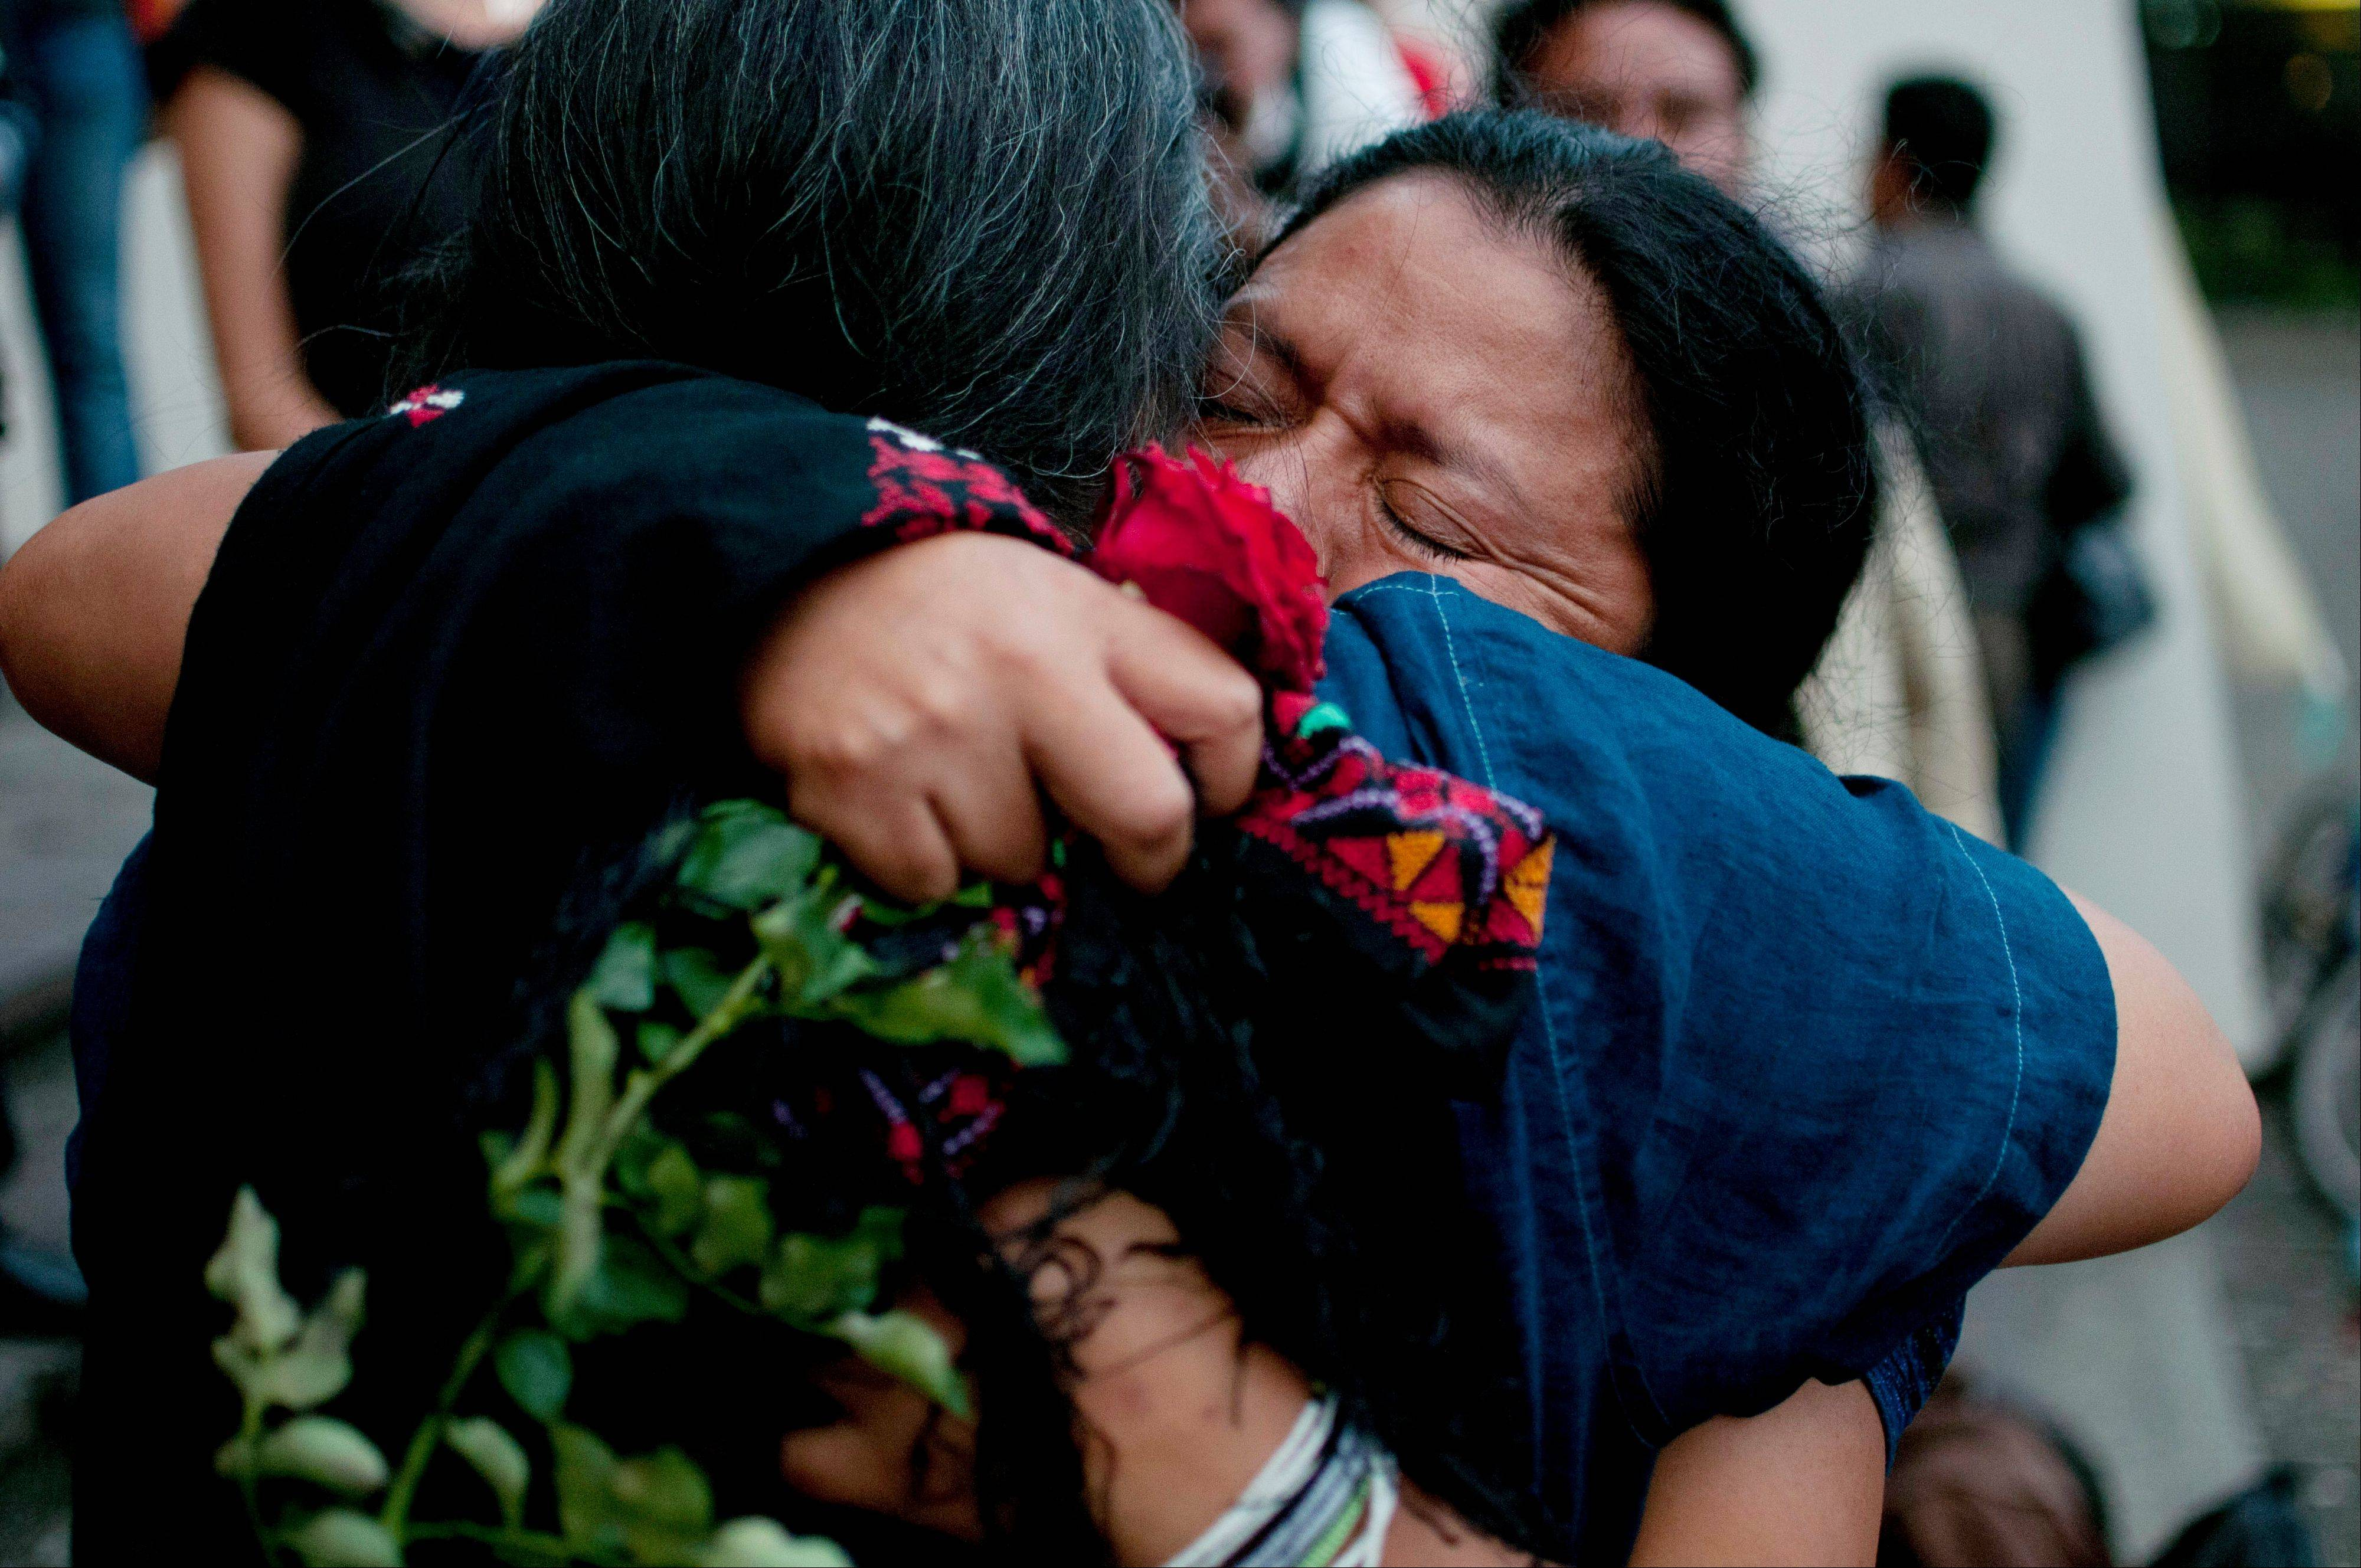 The relatives of people who were killed in the country�s civil war embrace after the judge�s guilty verdict Friday for Guatemala�s former dictator Jose Efrain Rios Montt.